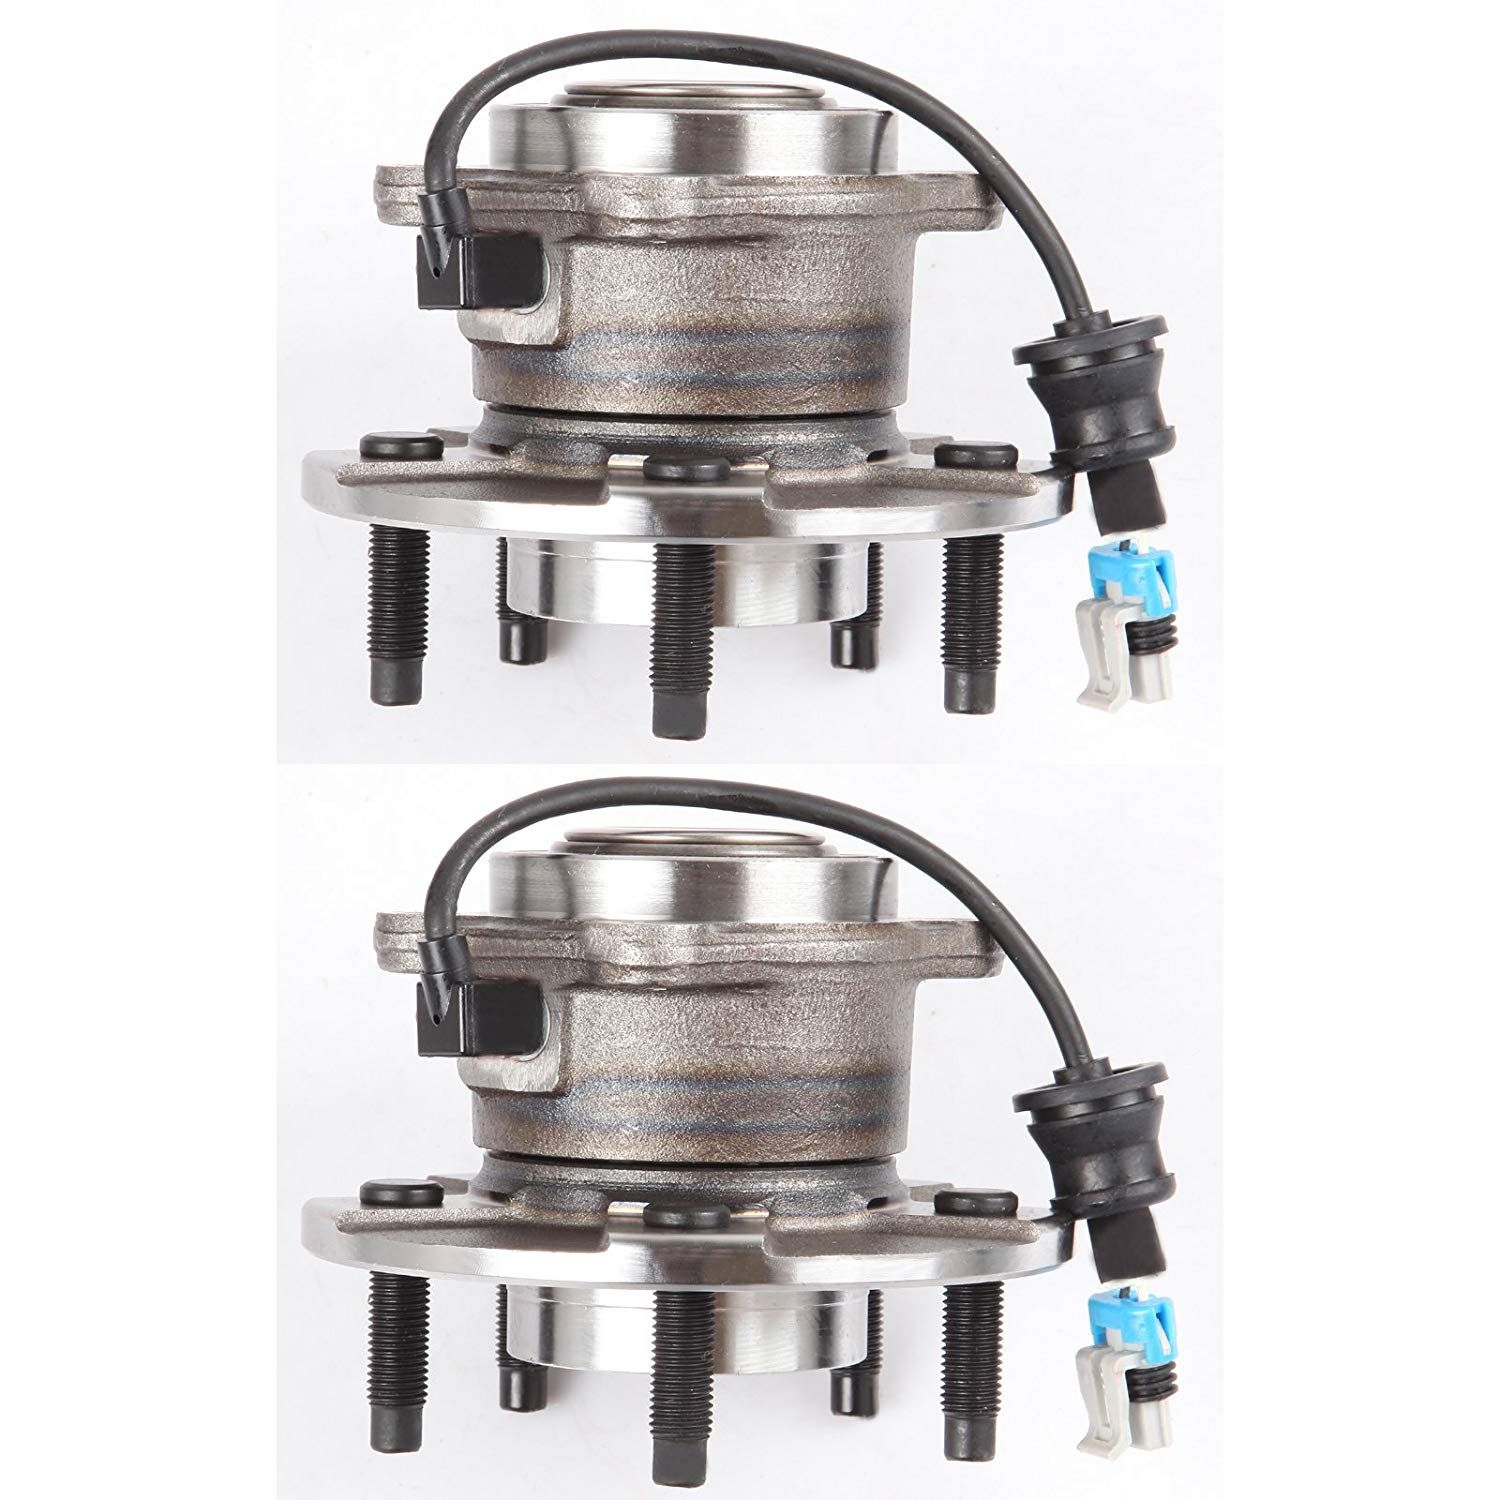 Scitoo Both 2 512229 New Rear Wheel Hub Bearing Fit 05 06 Chevy Saturn 5 Lugs W Abs To View Further For This Item Visit The Car Accessories Saturn Chevy